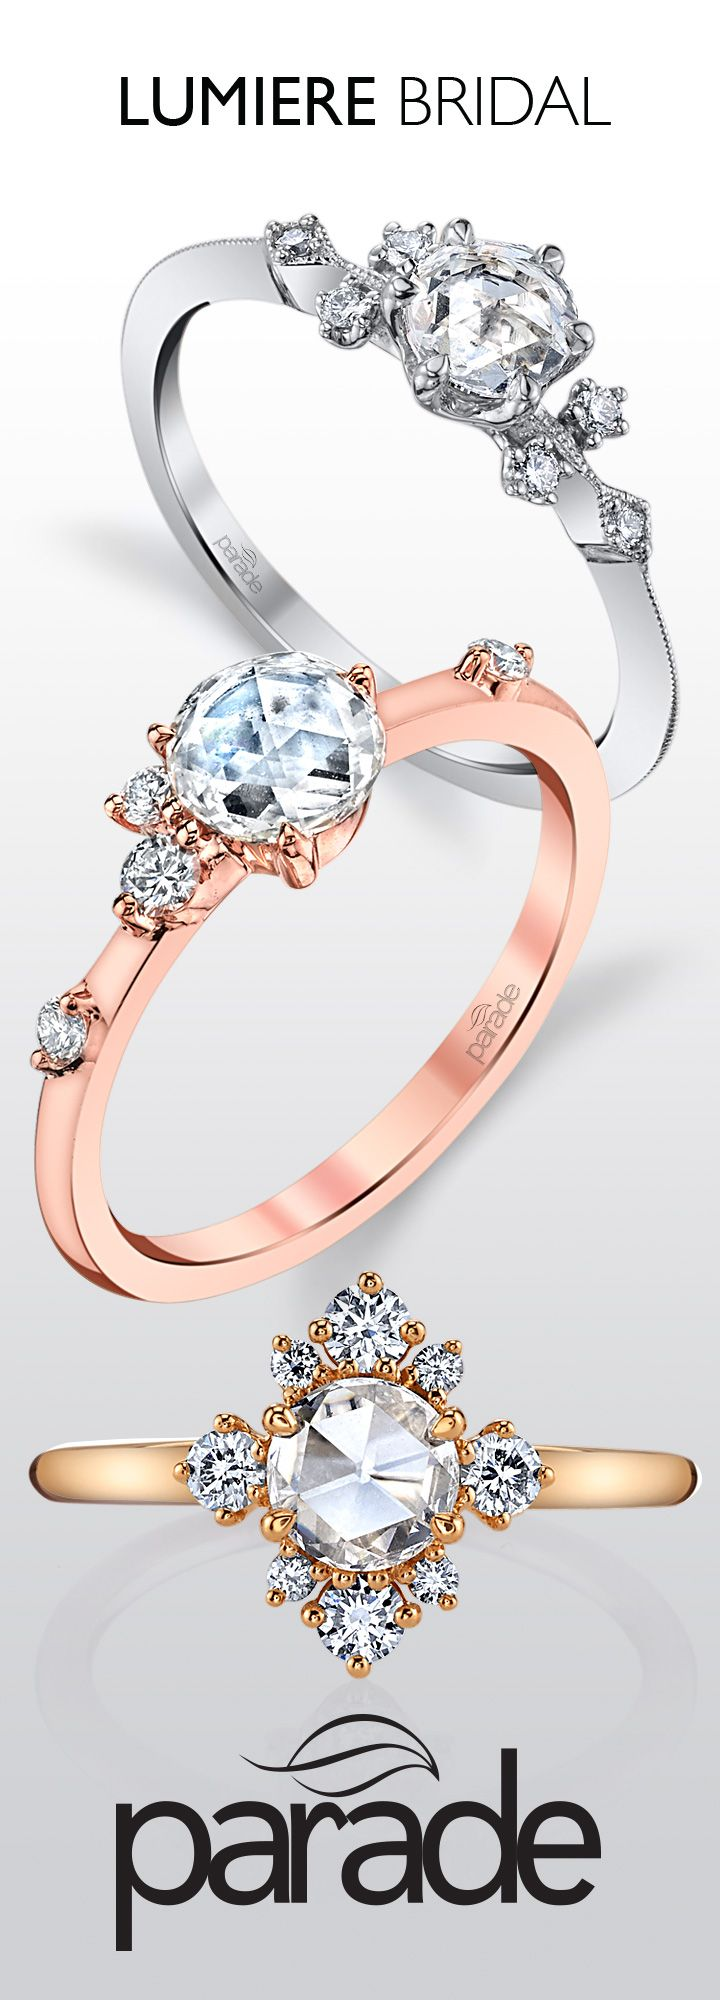 Lumiere Bridal: Exquisitely Feminine, This New Collection Delights With  Charming Rose Cut And Brilliant · Bridal Ringswedding